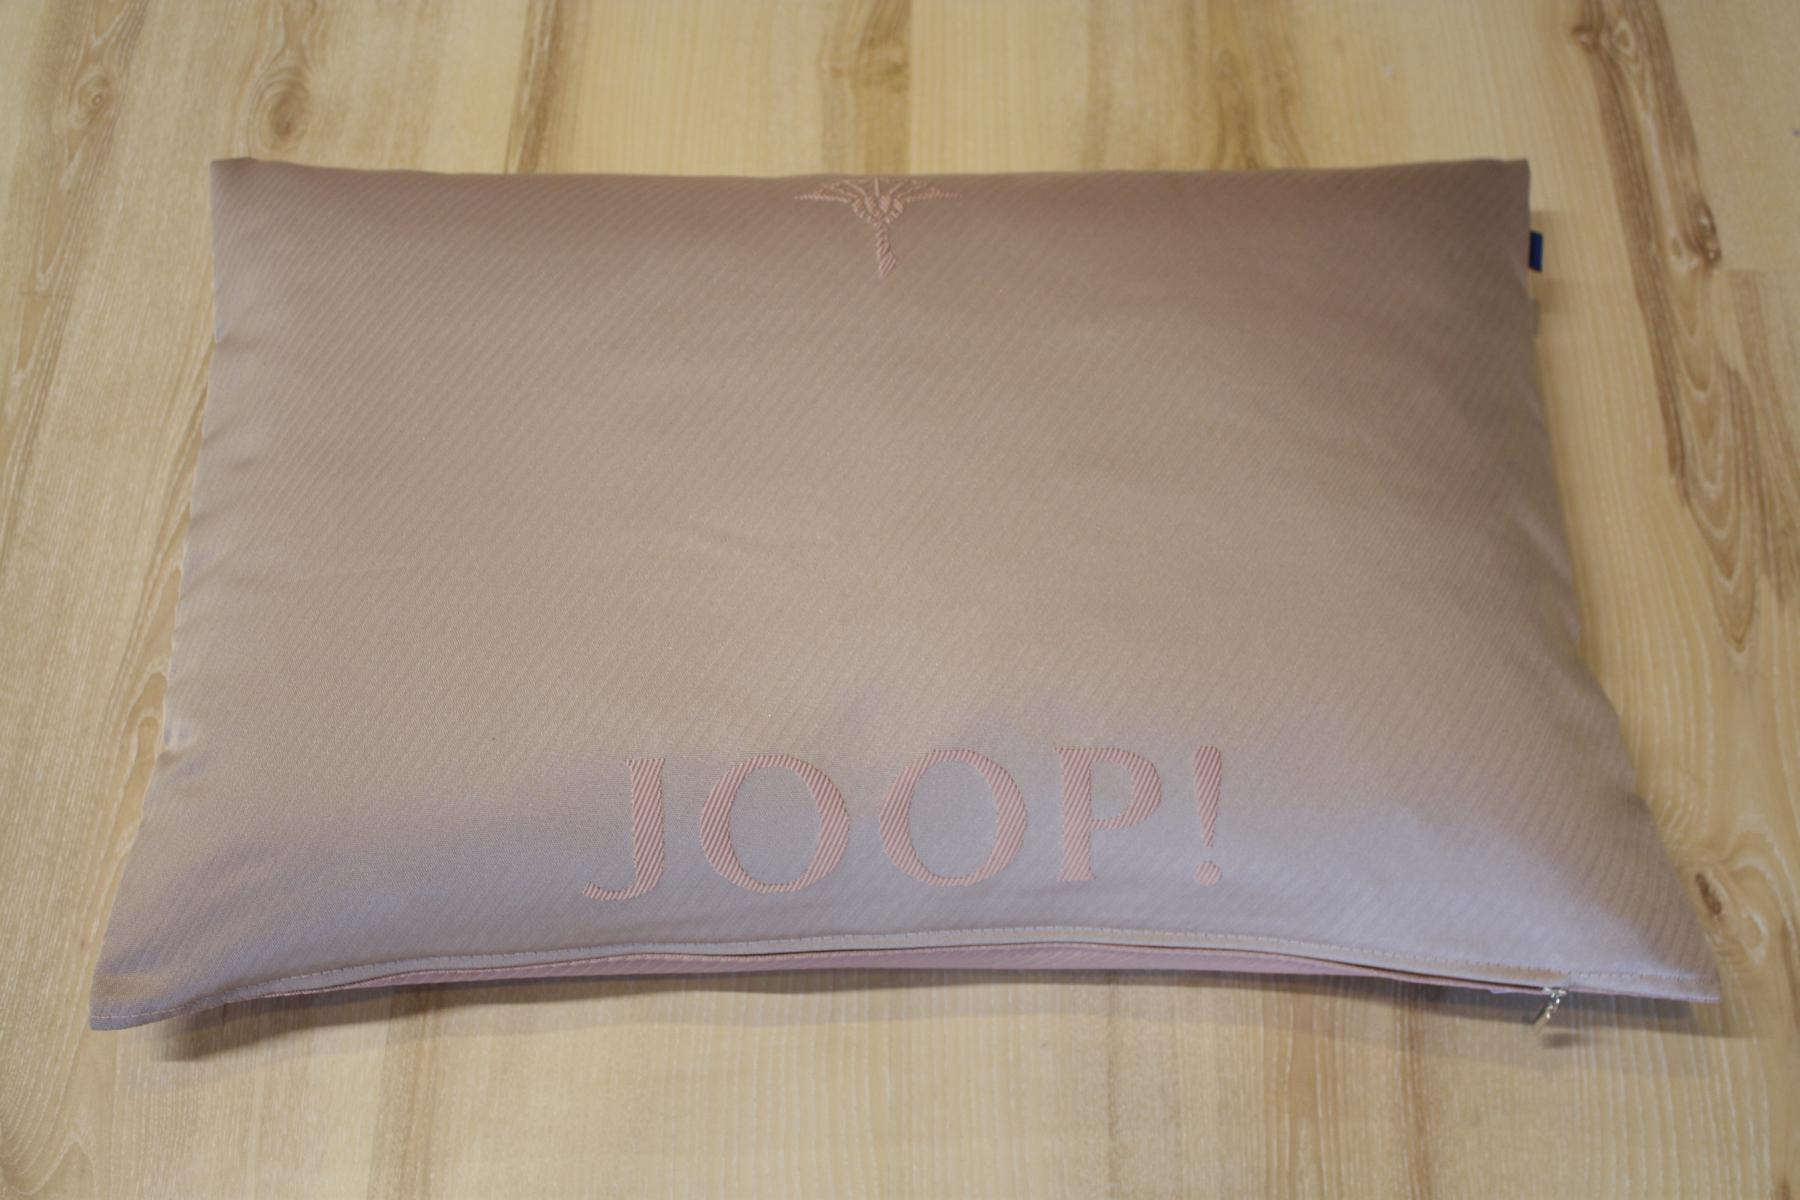 Joop Pillow Harmony 075 Nude 40x60 Cm Incl Feather